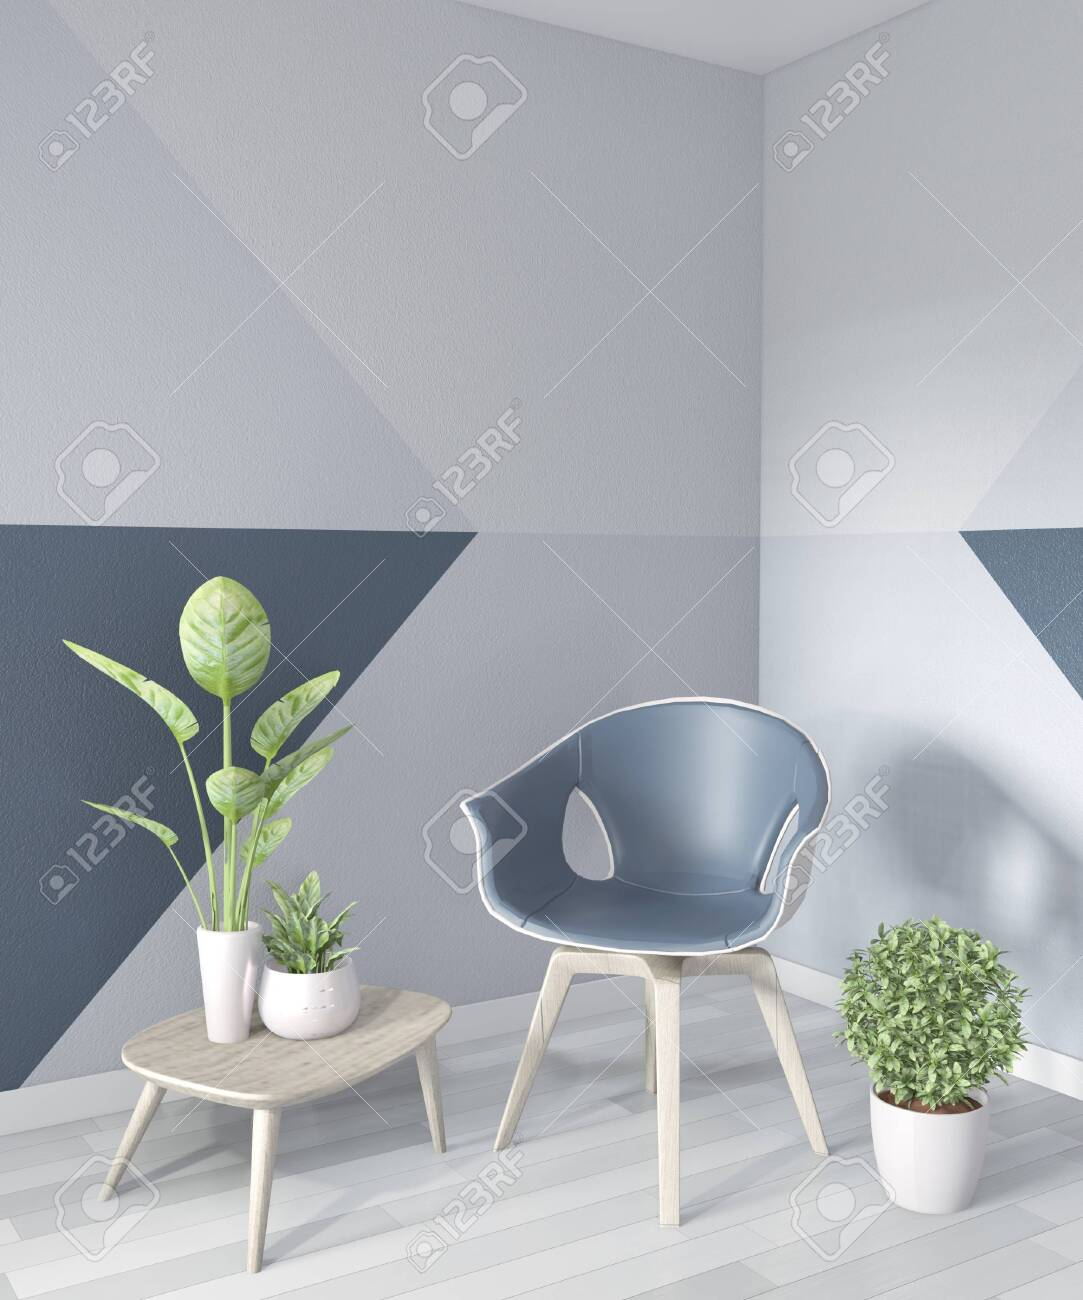 Ideas Of Living Room Blue Geometric Wall Art Paint Design Color Stock Photo Picture And Royalty Free Image Image 130045610